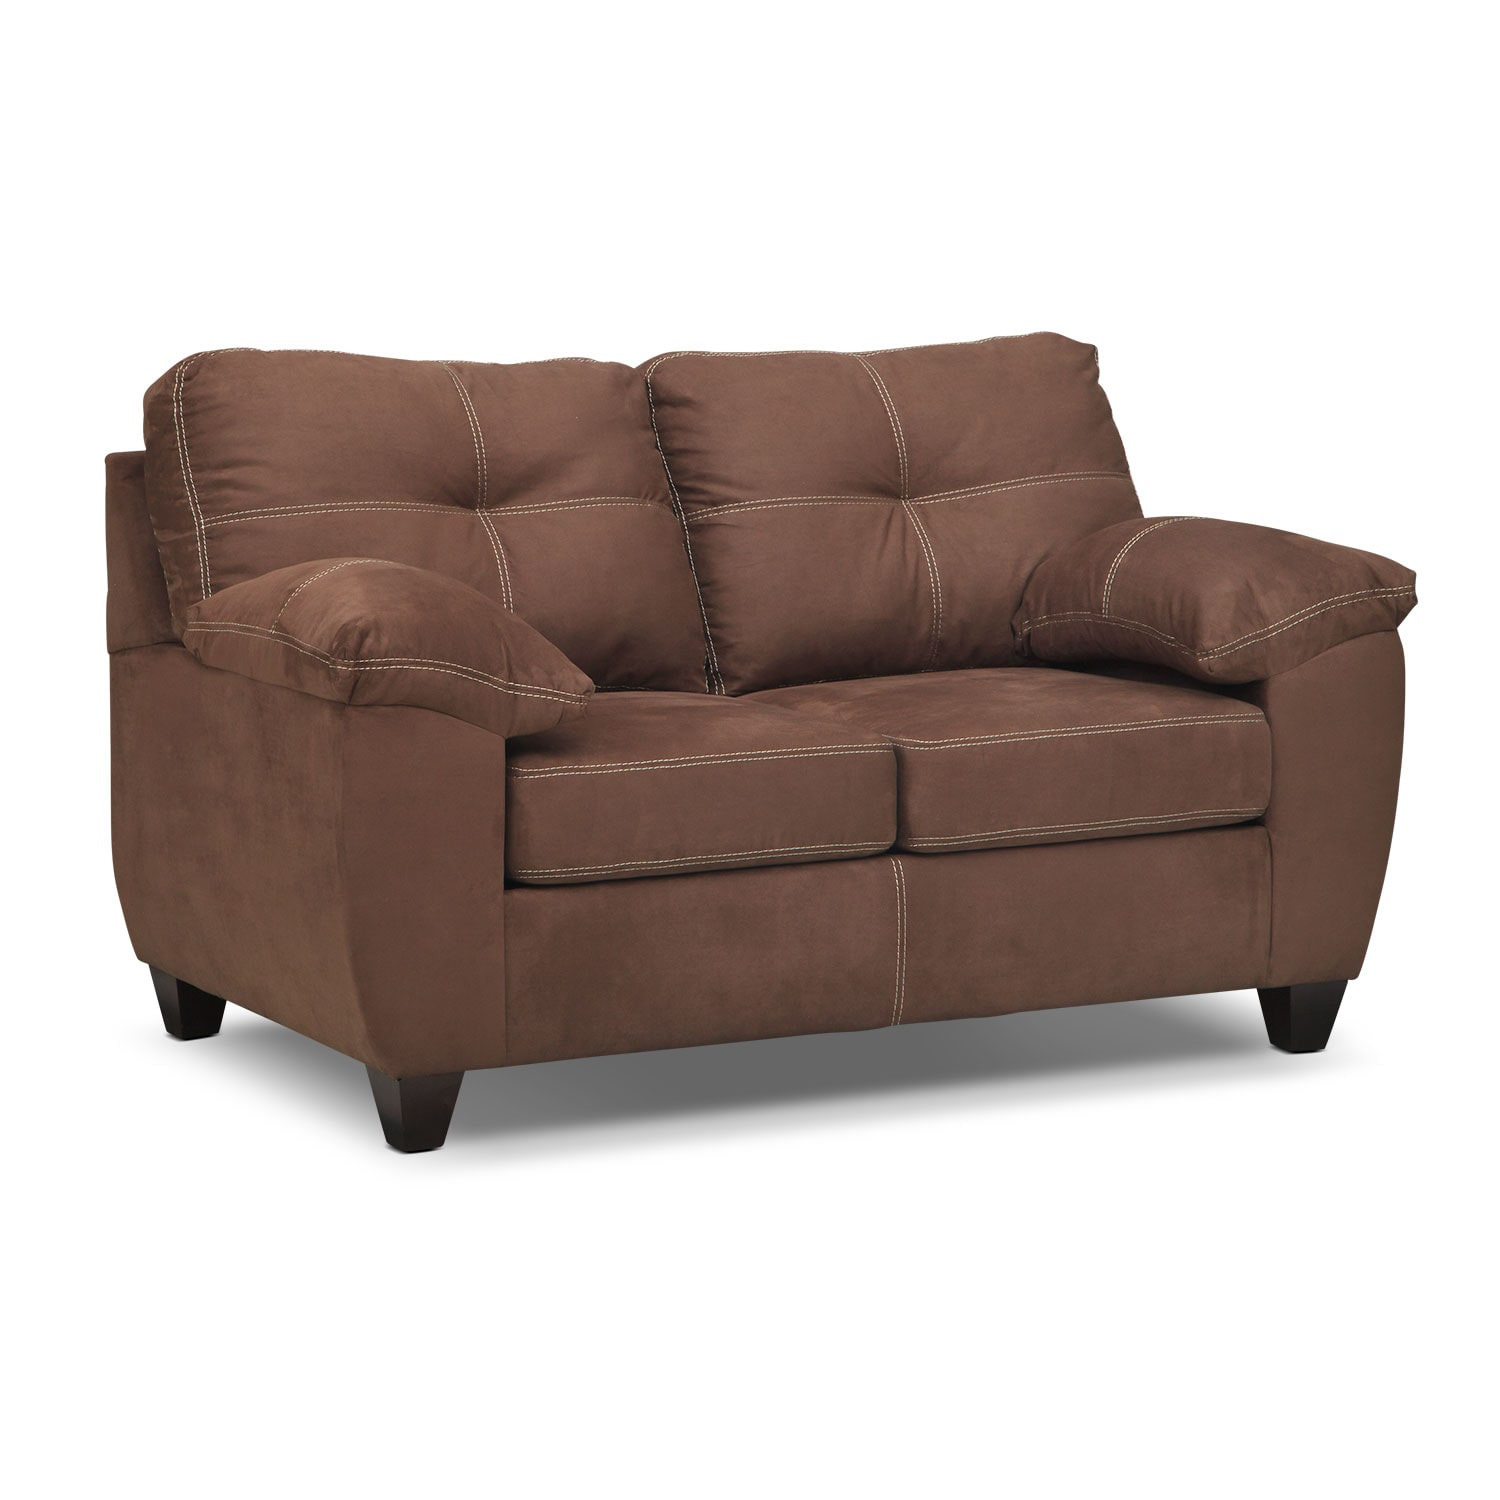 Rialto Loveseat - Coffee